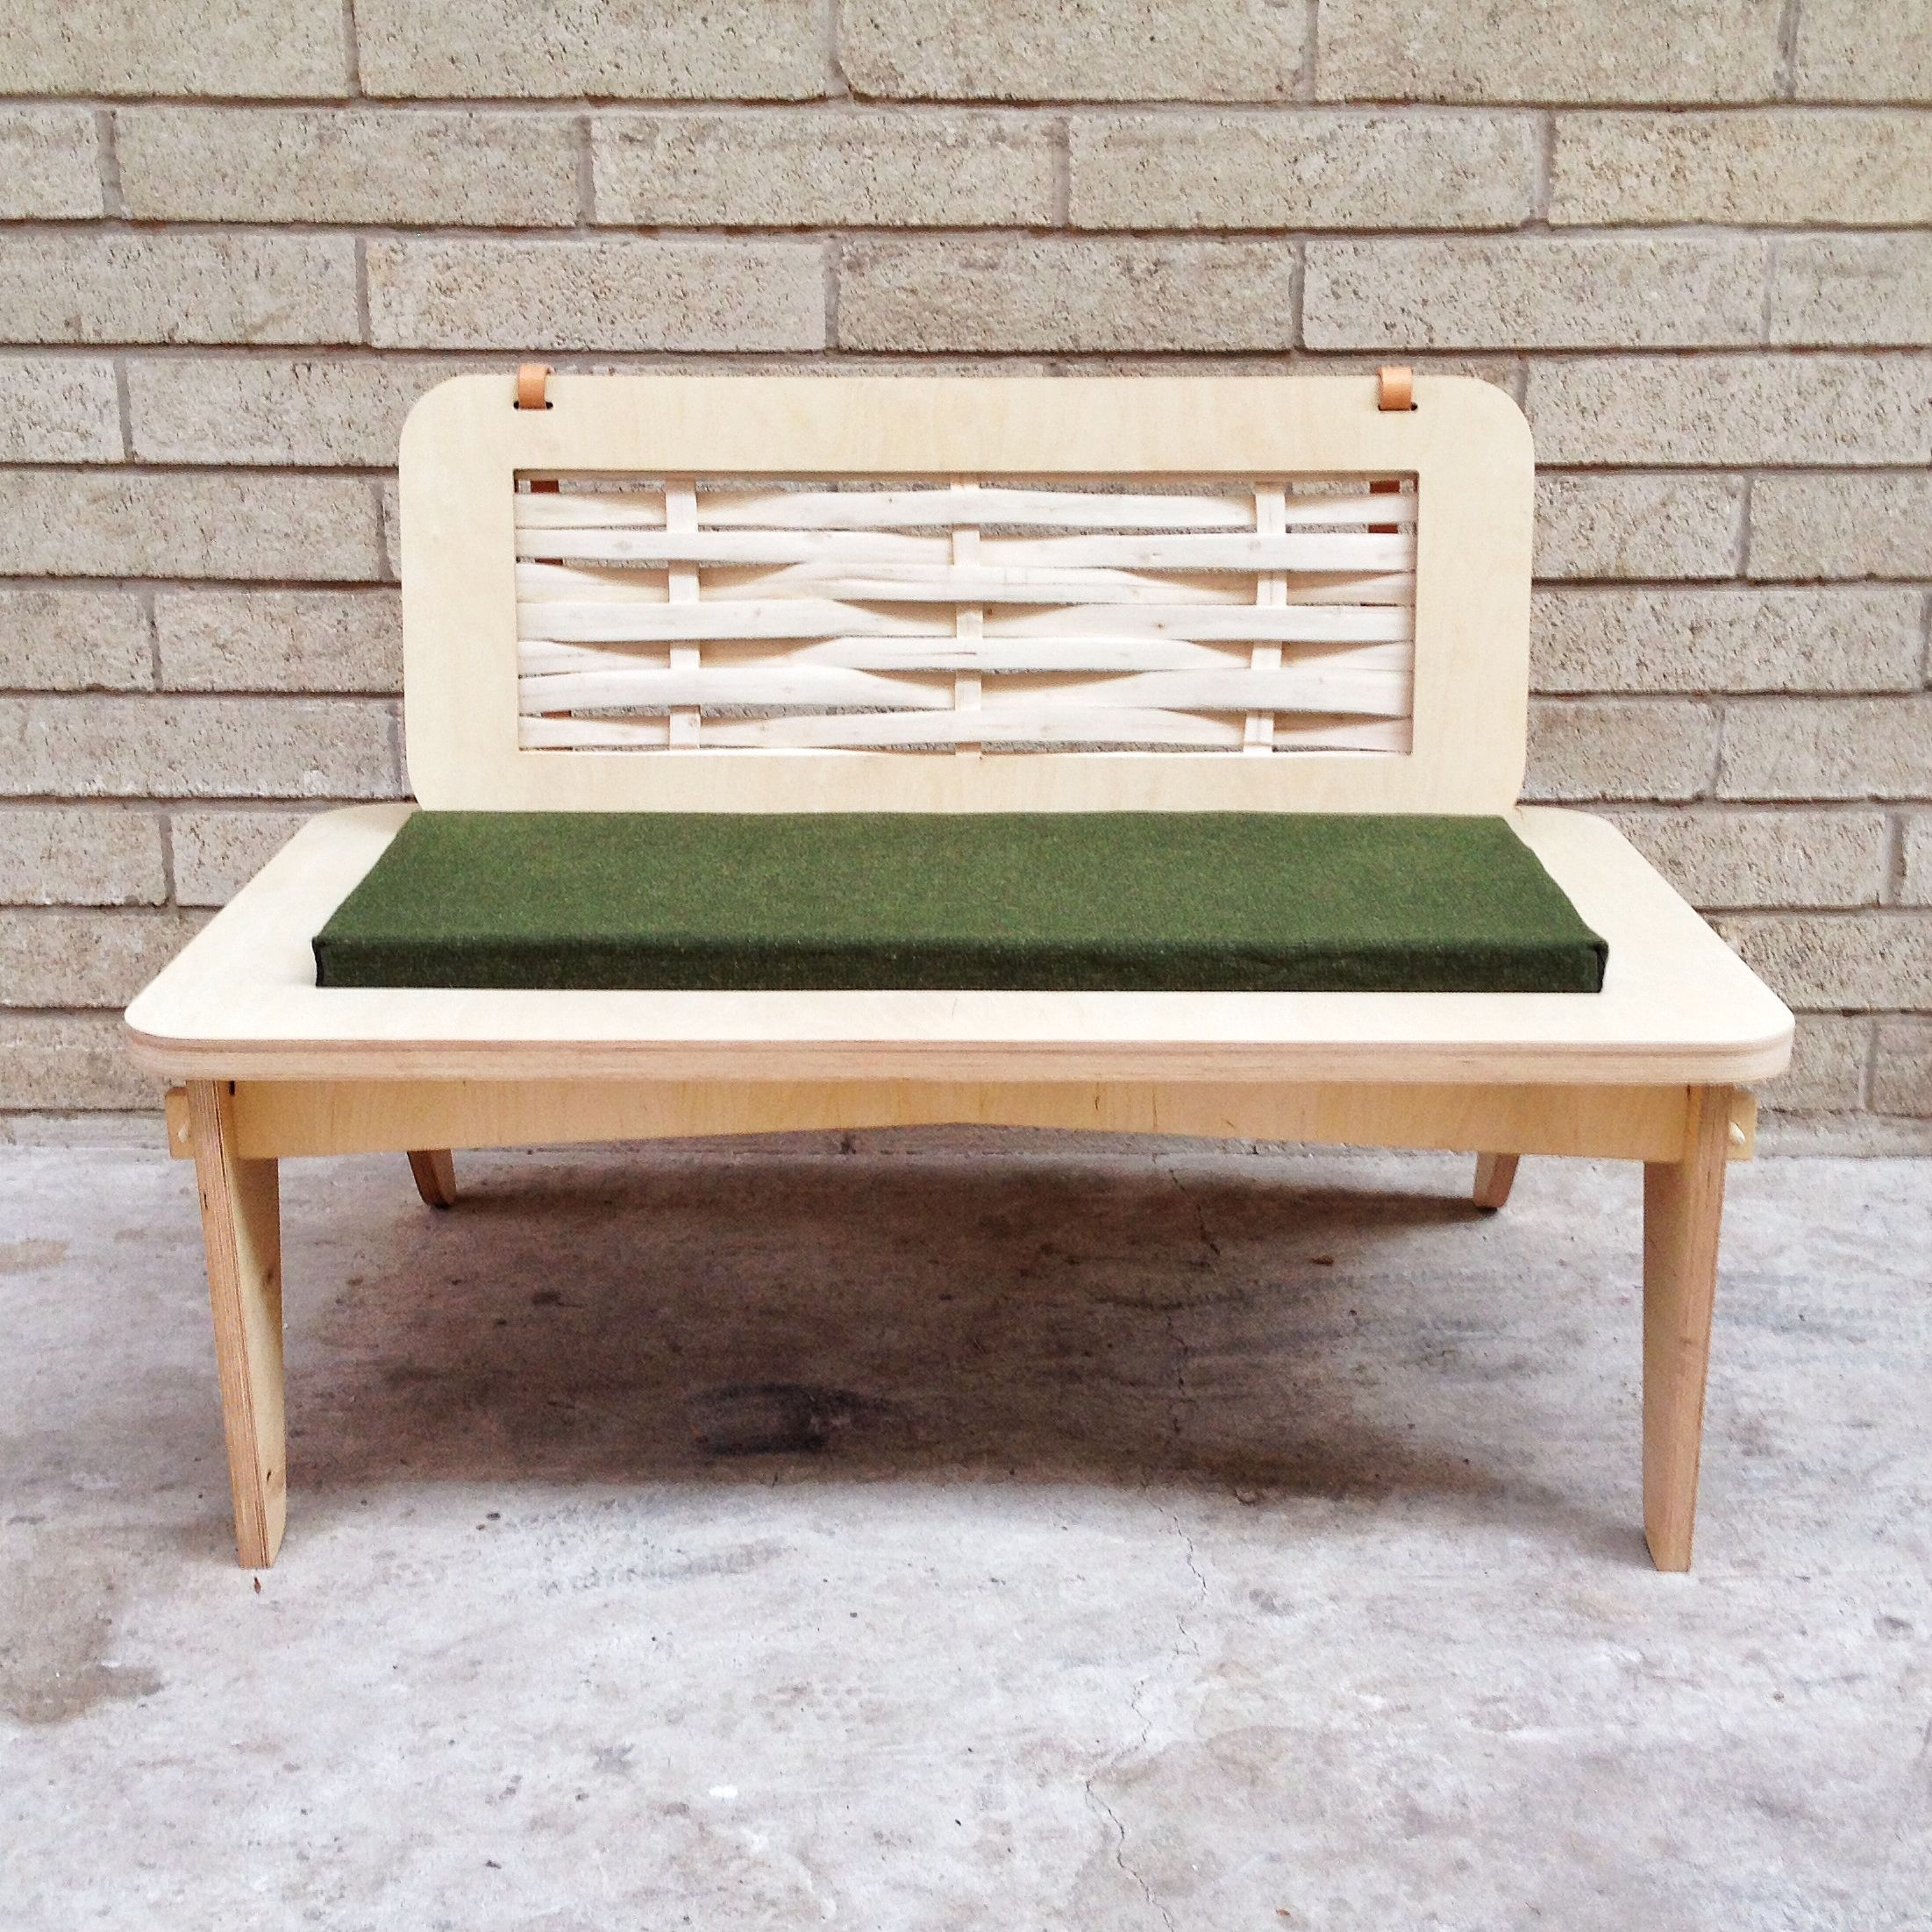 sam sofaer serta convertible sofa bed kohls nomad bench by samuel machell places to rest your legs